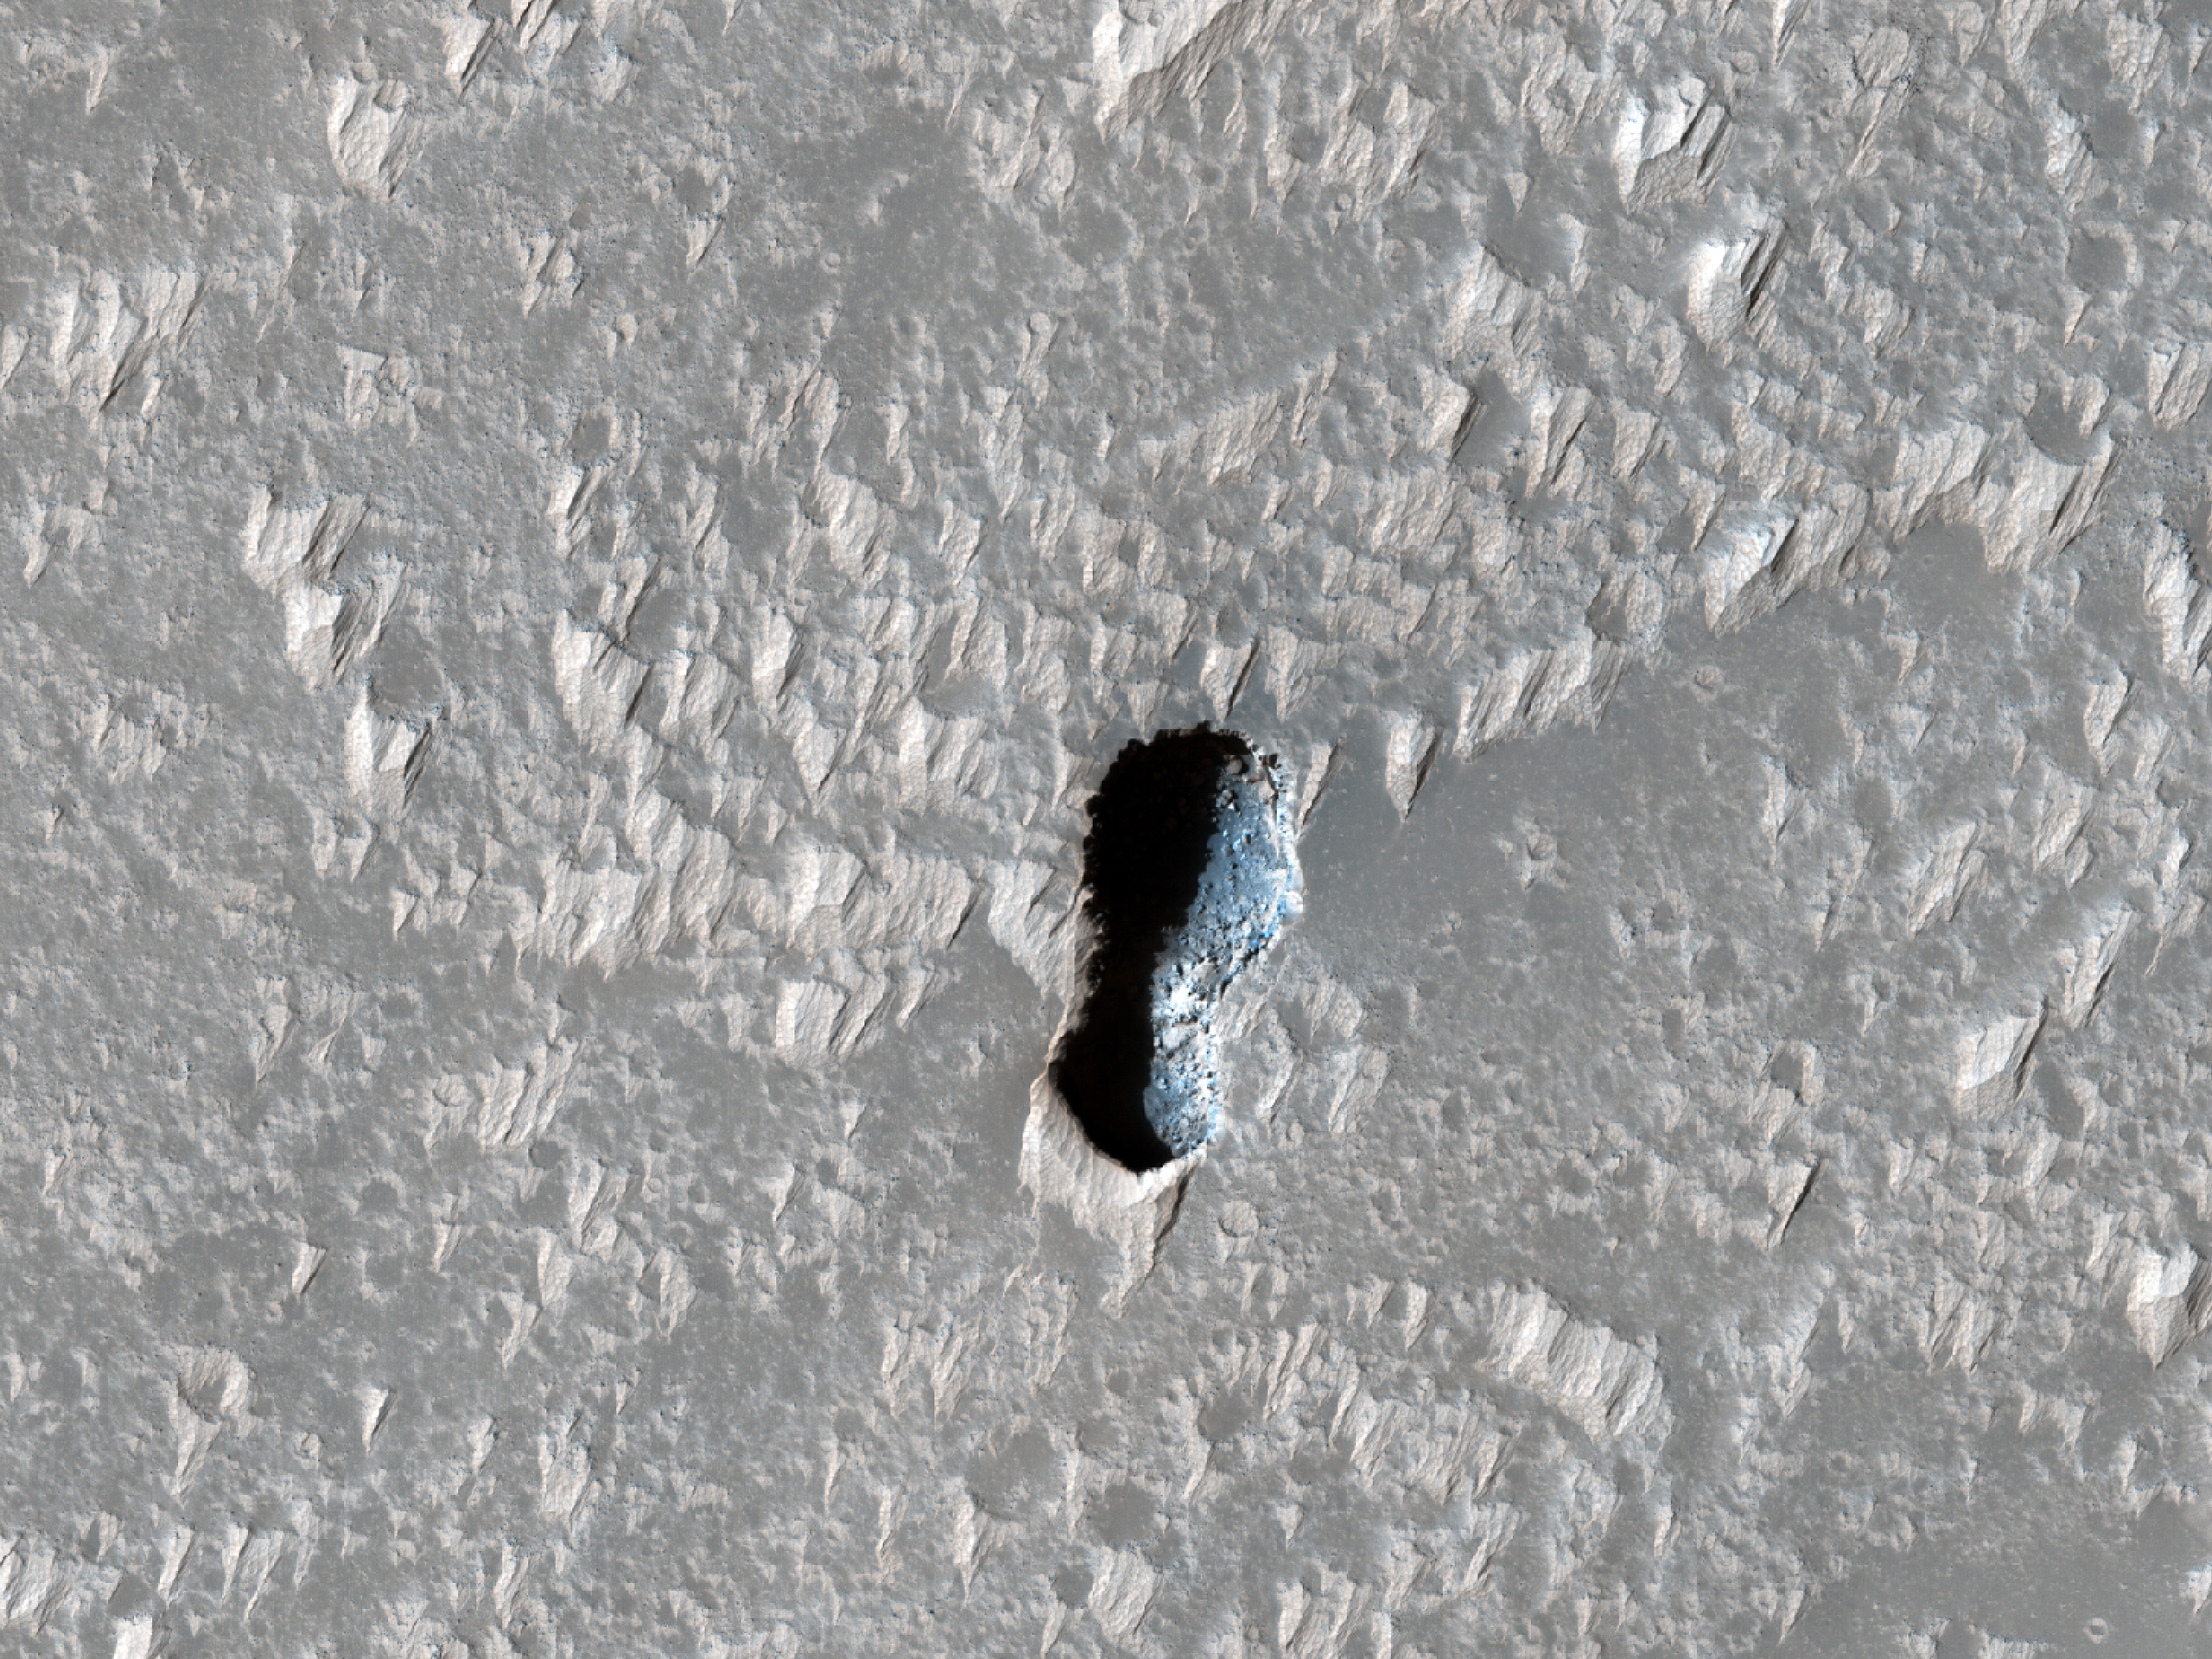 A Small Pit South of Arsia Mons